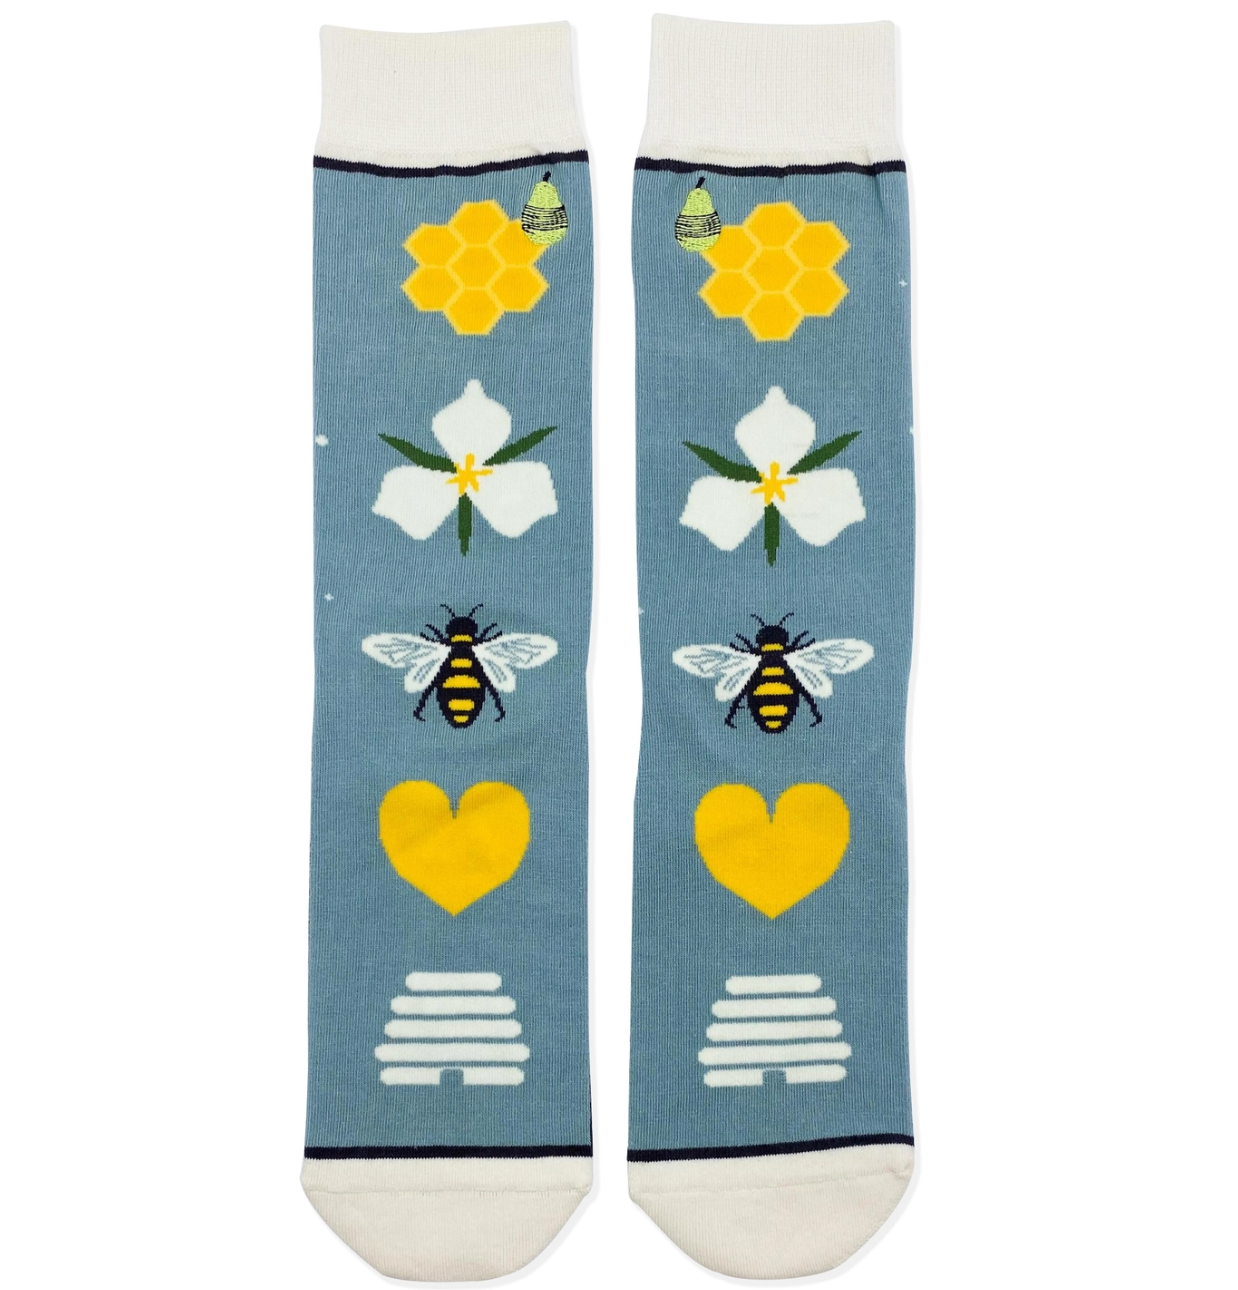 Woven Pear Save the Bees Socks